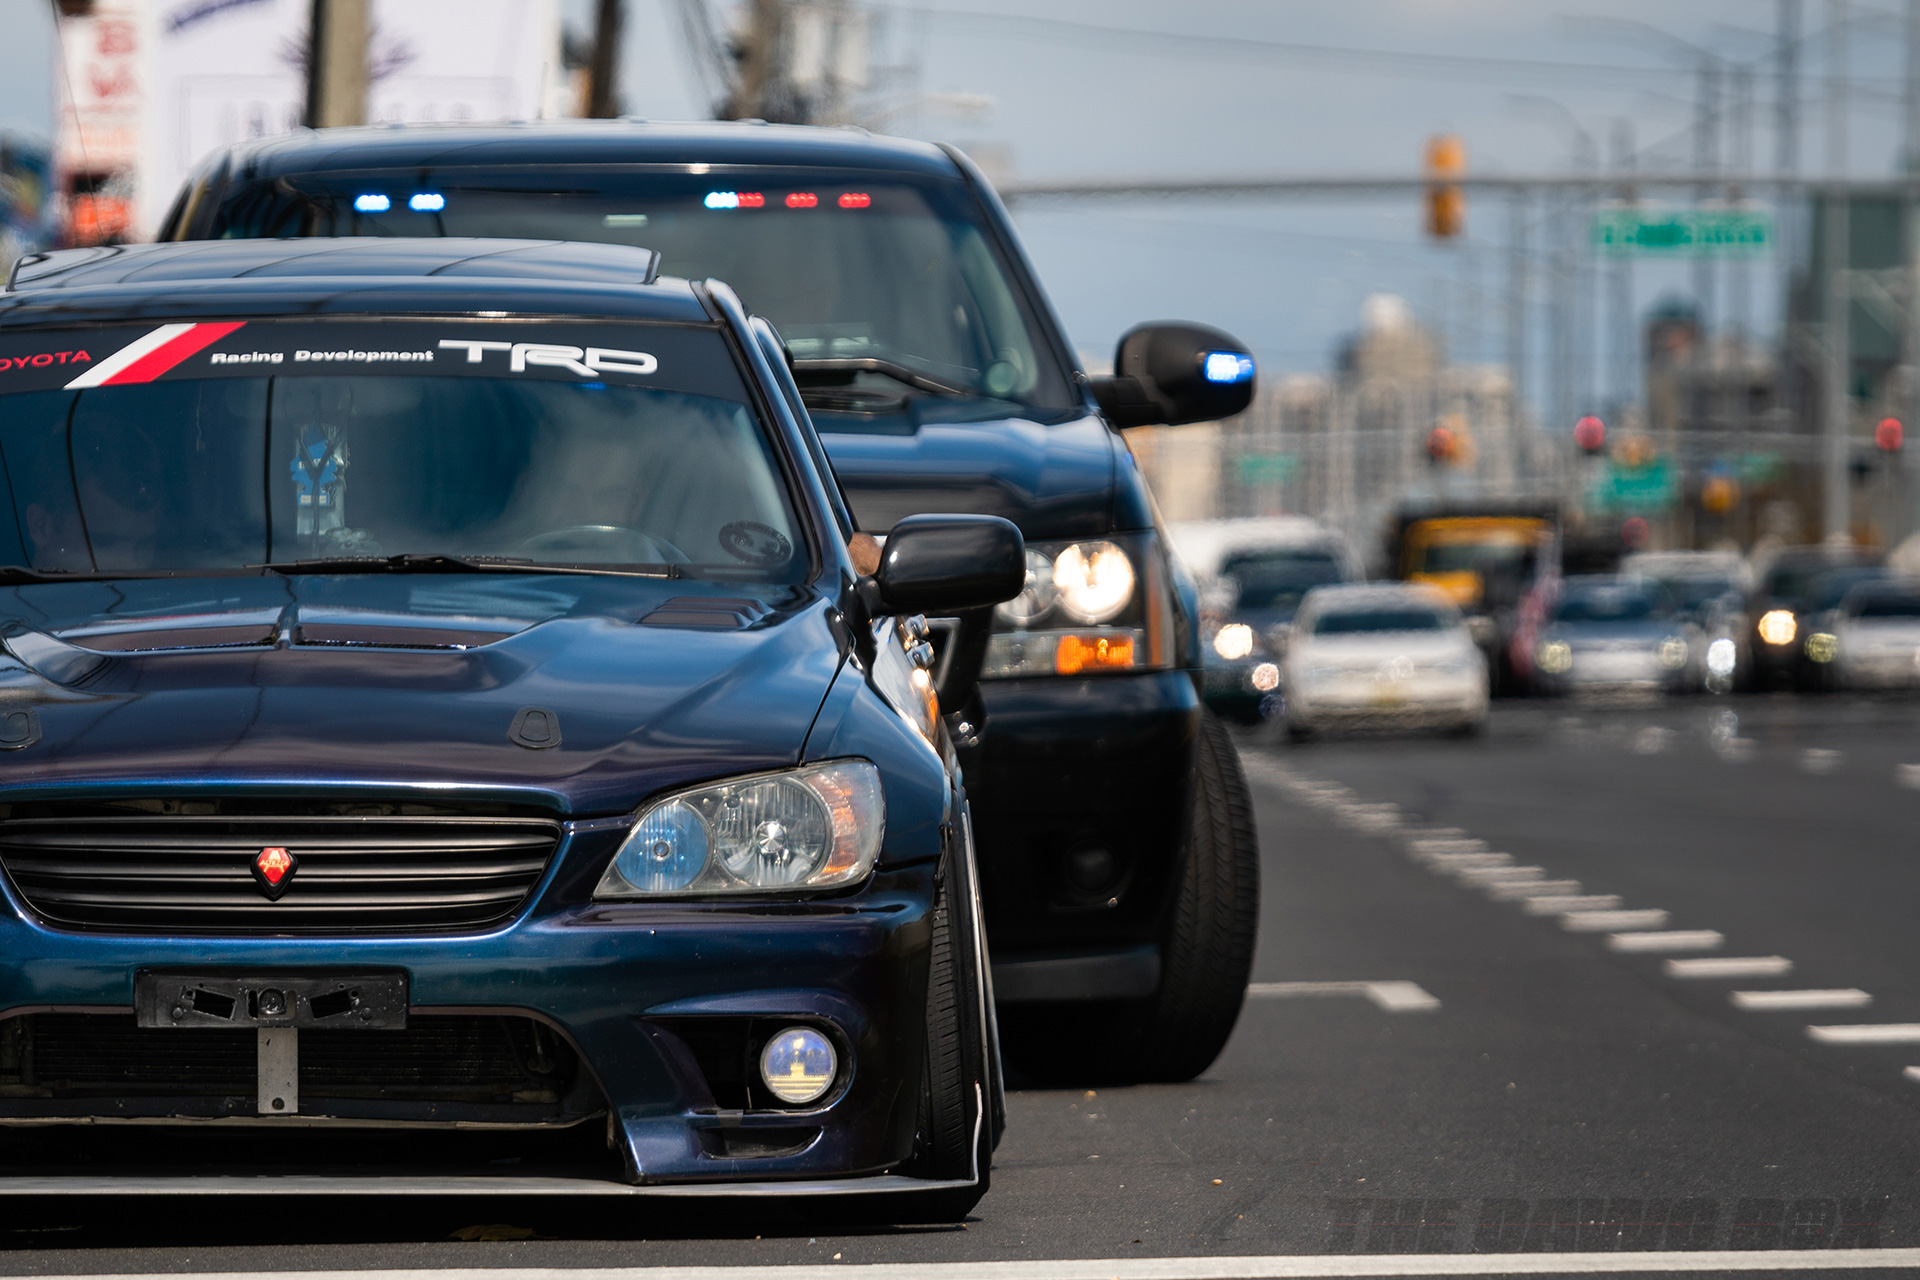 Altezza pulled over by cop at H2Oi